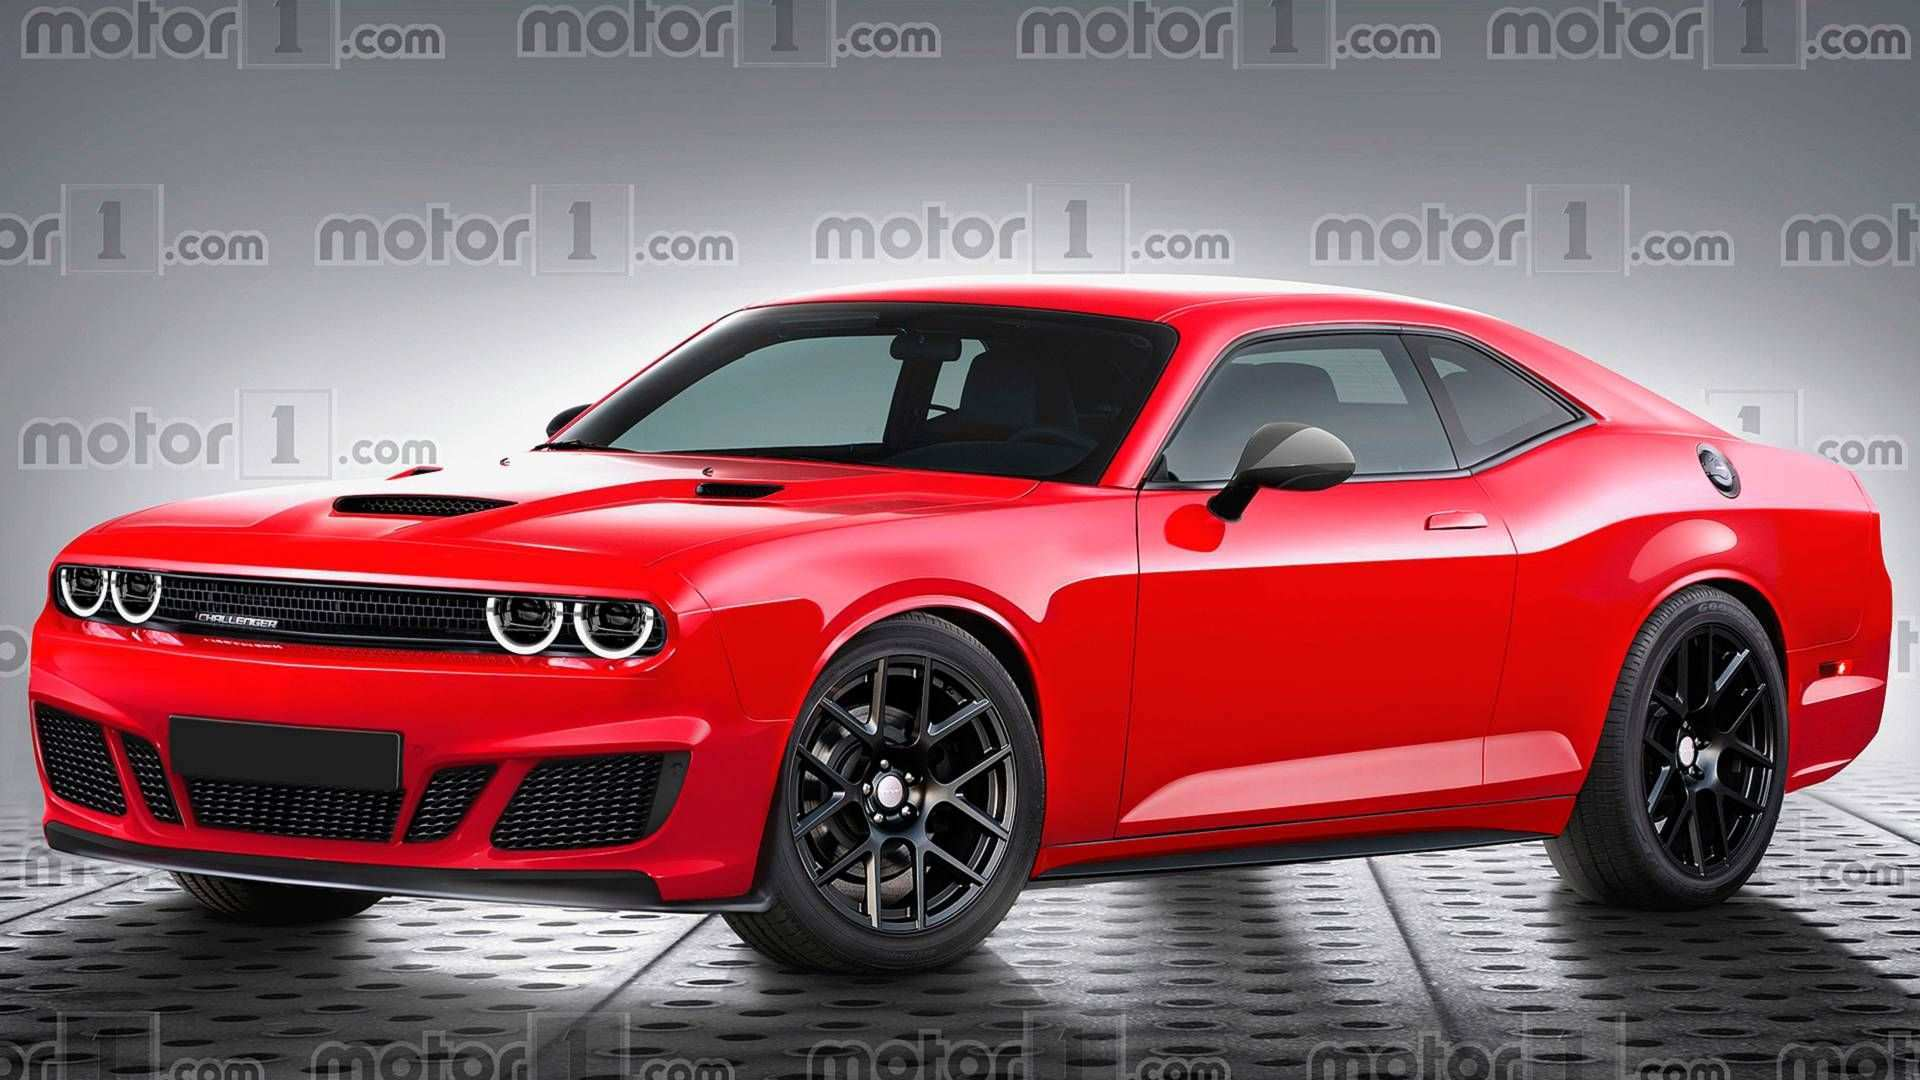 60 Concept of 2020 Dodge Charger Srt8 Hellcat Exterior by 2020 Dodge Charger Srt8 Hellcat